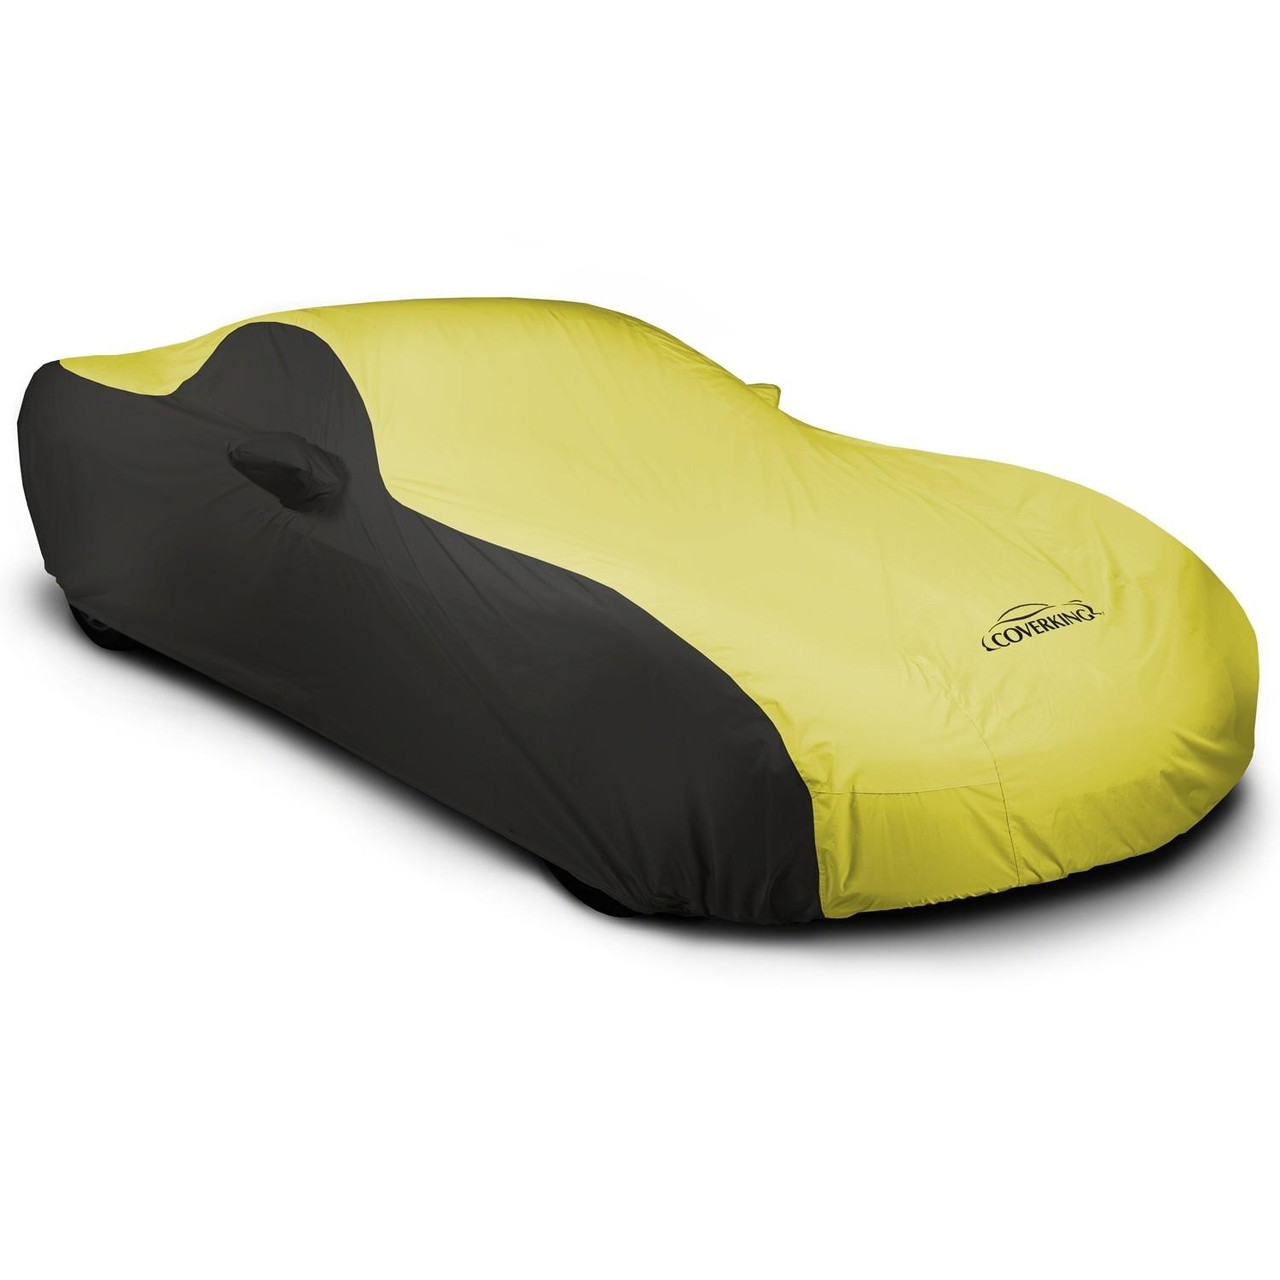 Corvette Outdoor Car Cover black/yellow